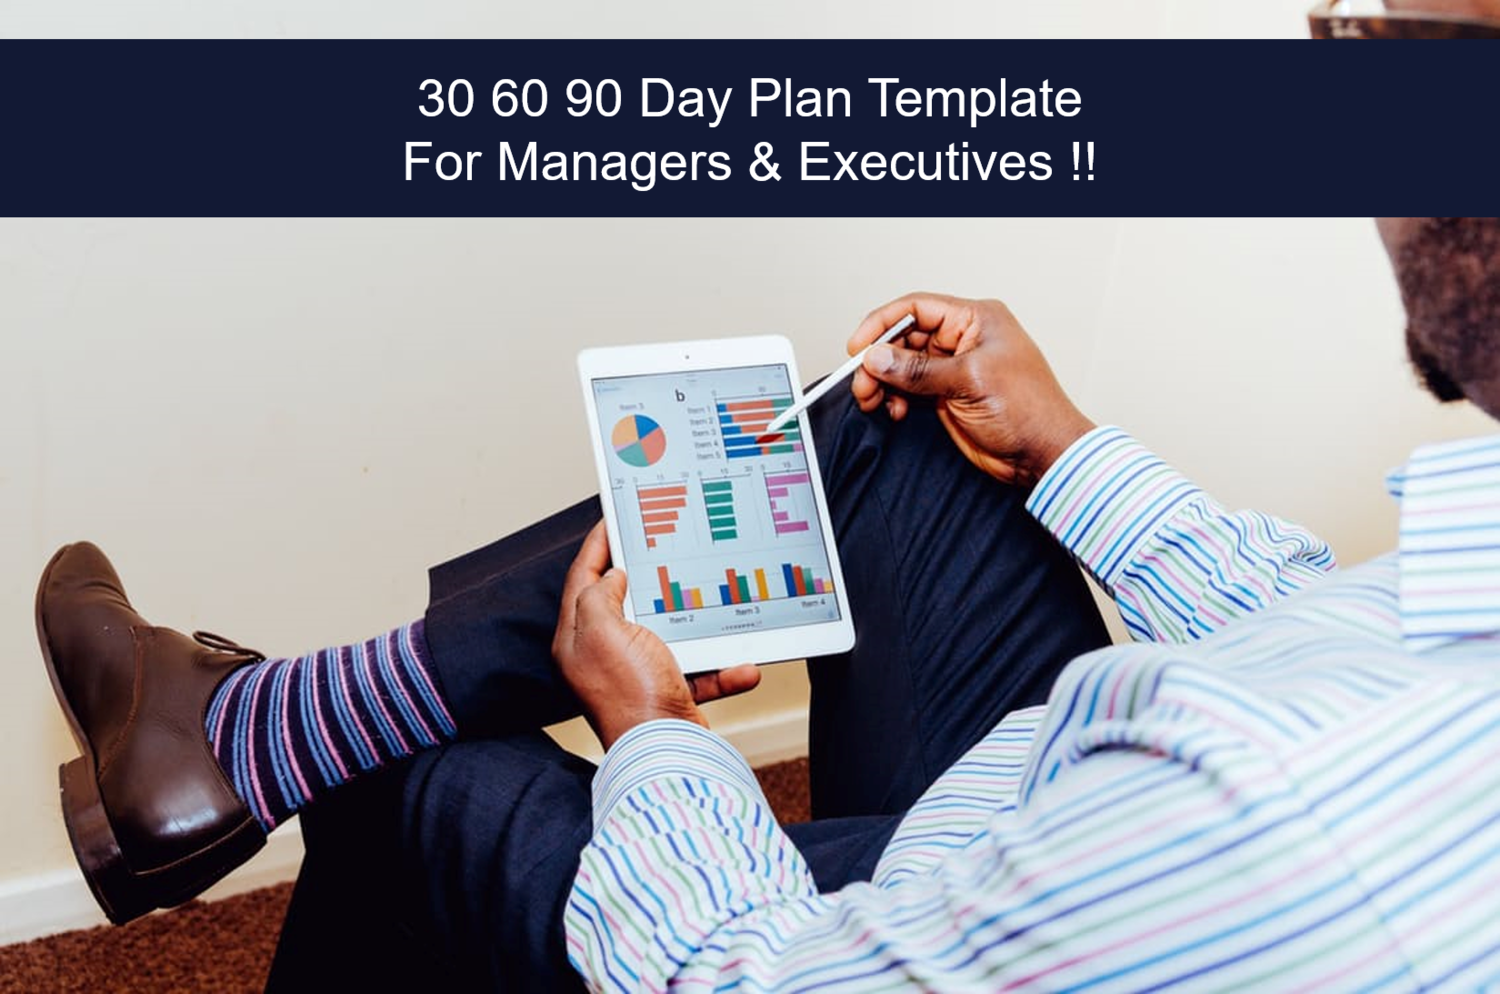 30 60 90 Day Plan Template For Managers Executives Brendan Reid